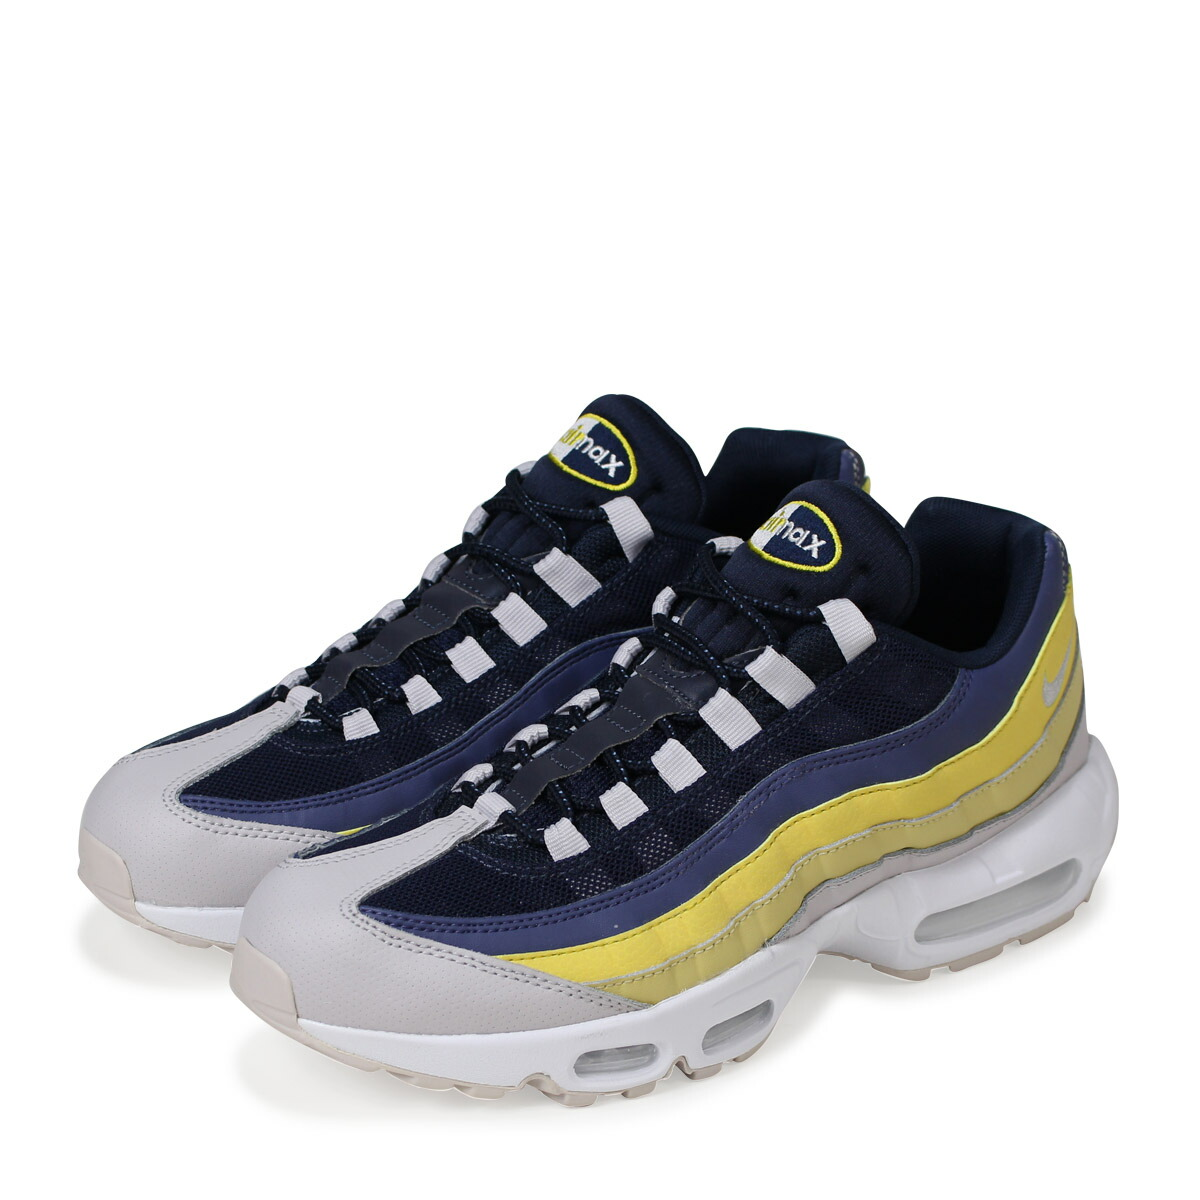 competitive price 41e14 5a7ae NIKE AIR MAX 95 ESSENTIAL Kie Ney AMAX 95 essential sneakers men 749,766-107  white load planned Shinnyu load in reservation product 423 containing  184